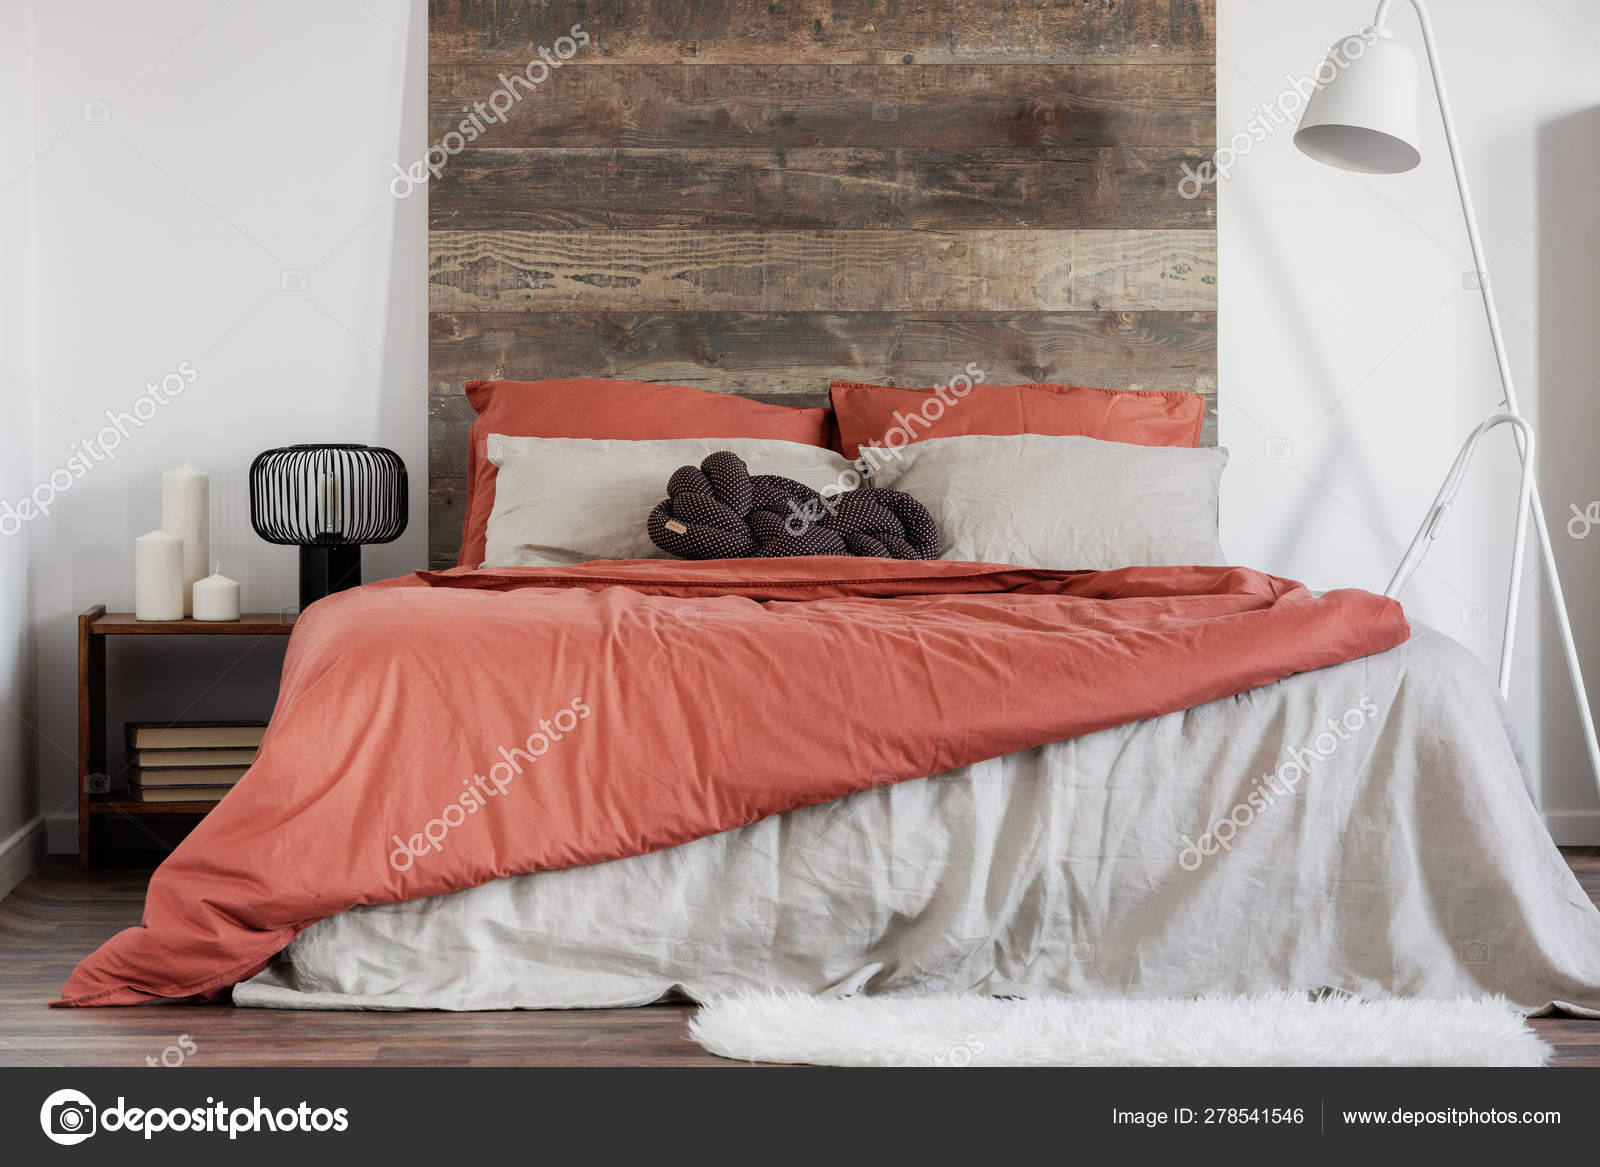 Comfortable King Size Bed With Wooden Rustic Headboard And White Industrial Lamp Next To It Stock Photo C Photographee Eu 278541546